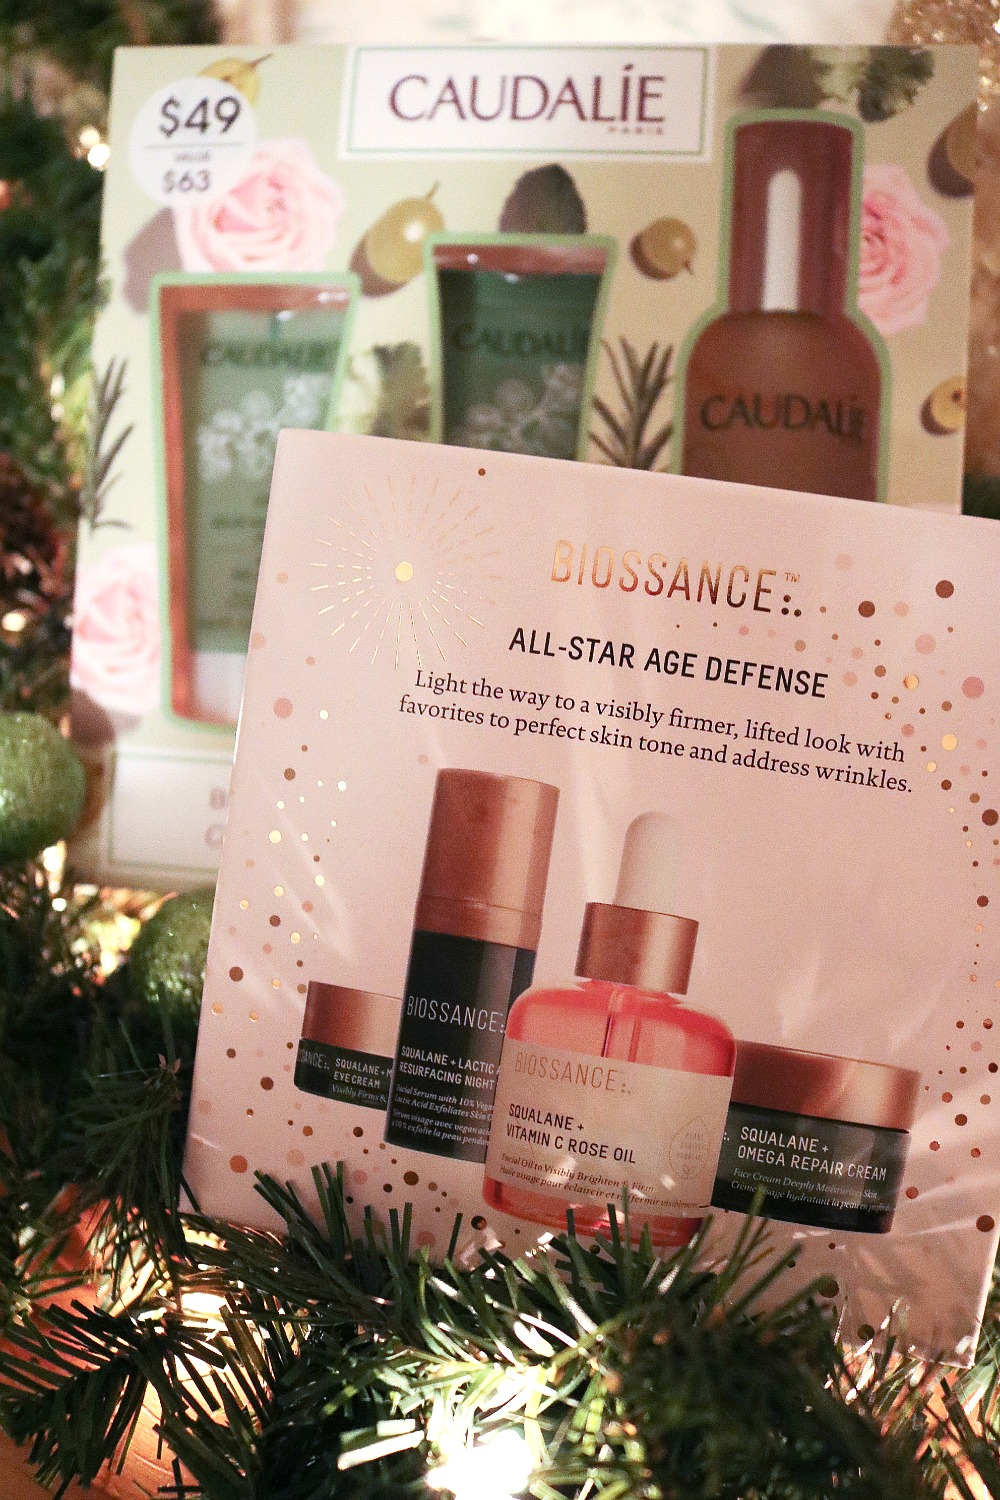 Best Skincare Gift Sets for Holiday 2020 I DreaminLace.com #GiftsforHer #GiftIdeas #Skincare